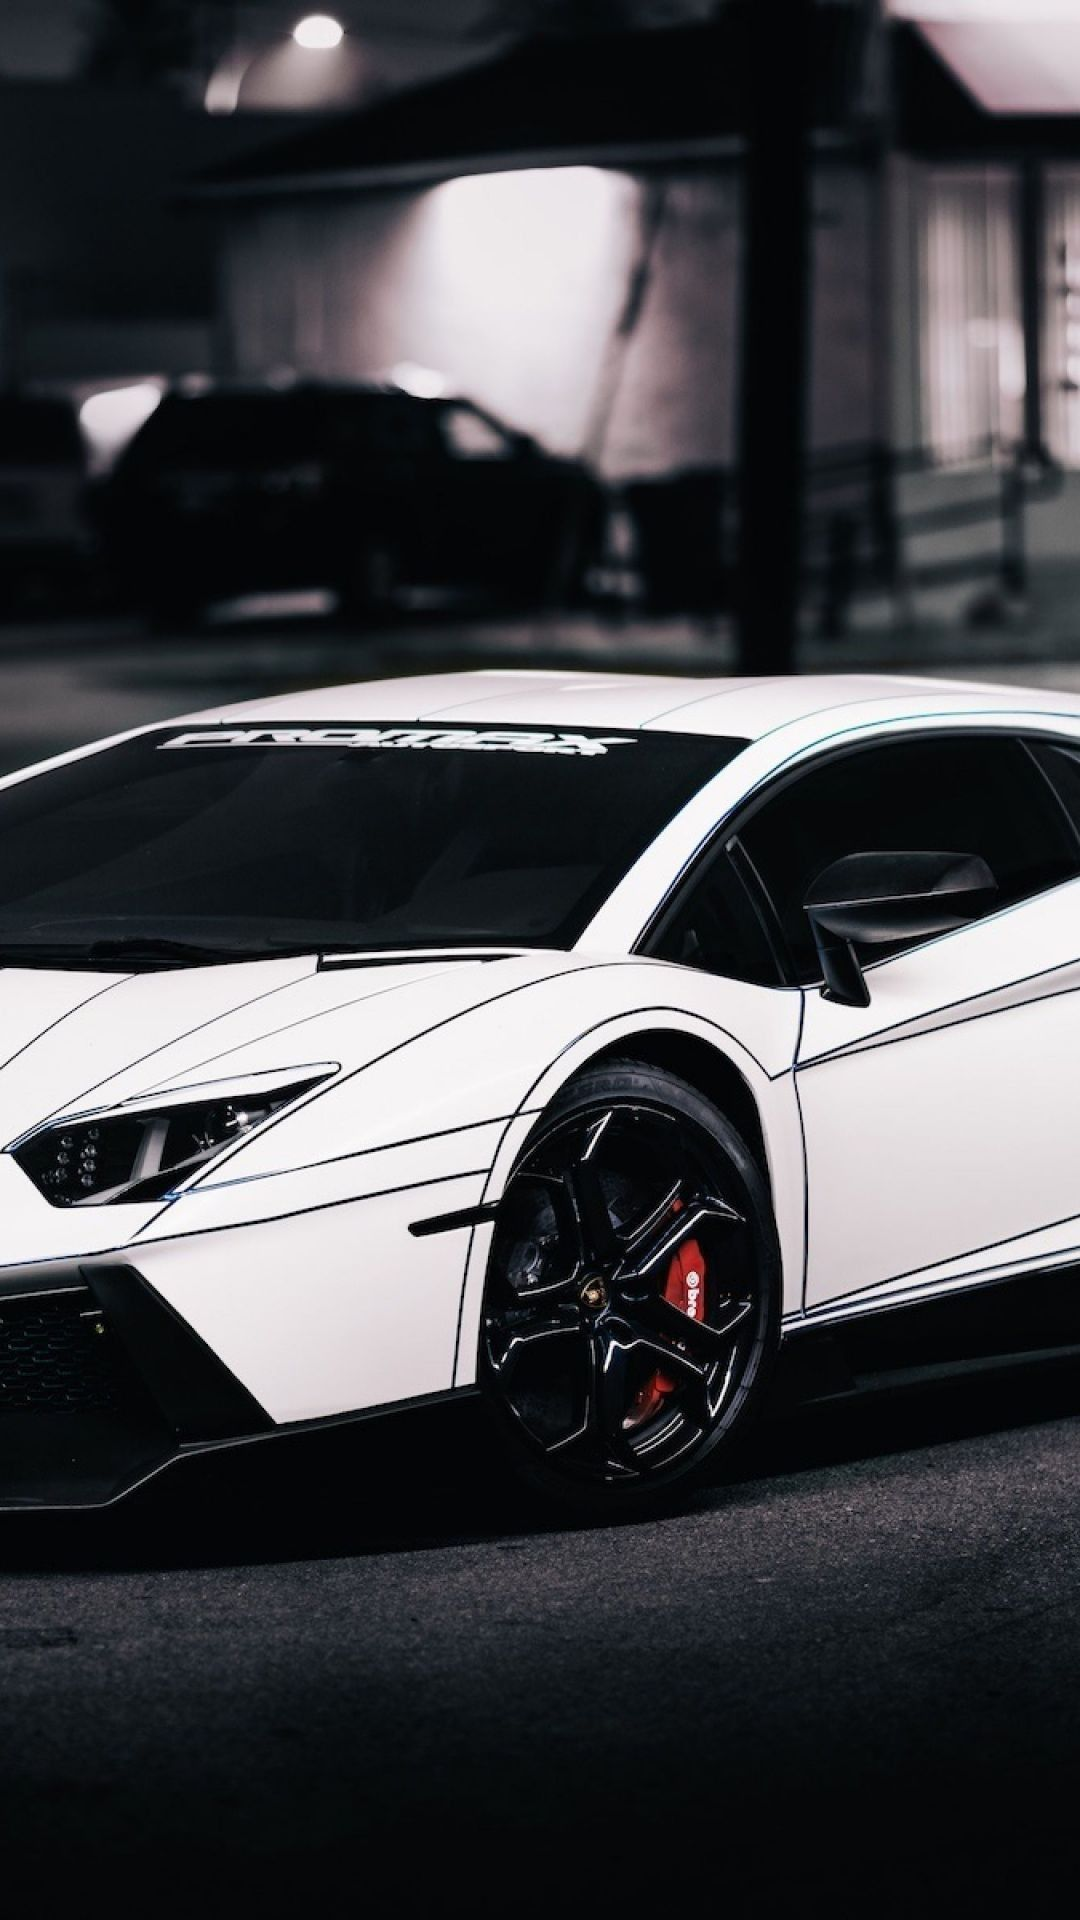 Leave A Follow Thank You For The Support In 2021 Iphone 6 Wallpaper Lamborghini Wallpaper